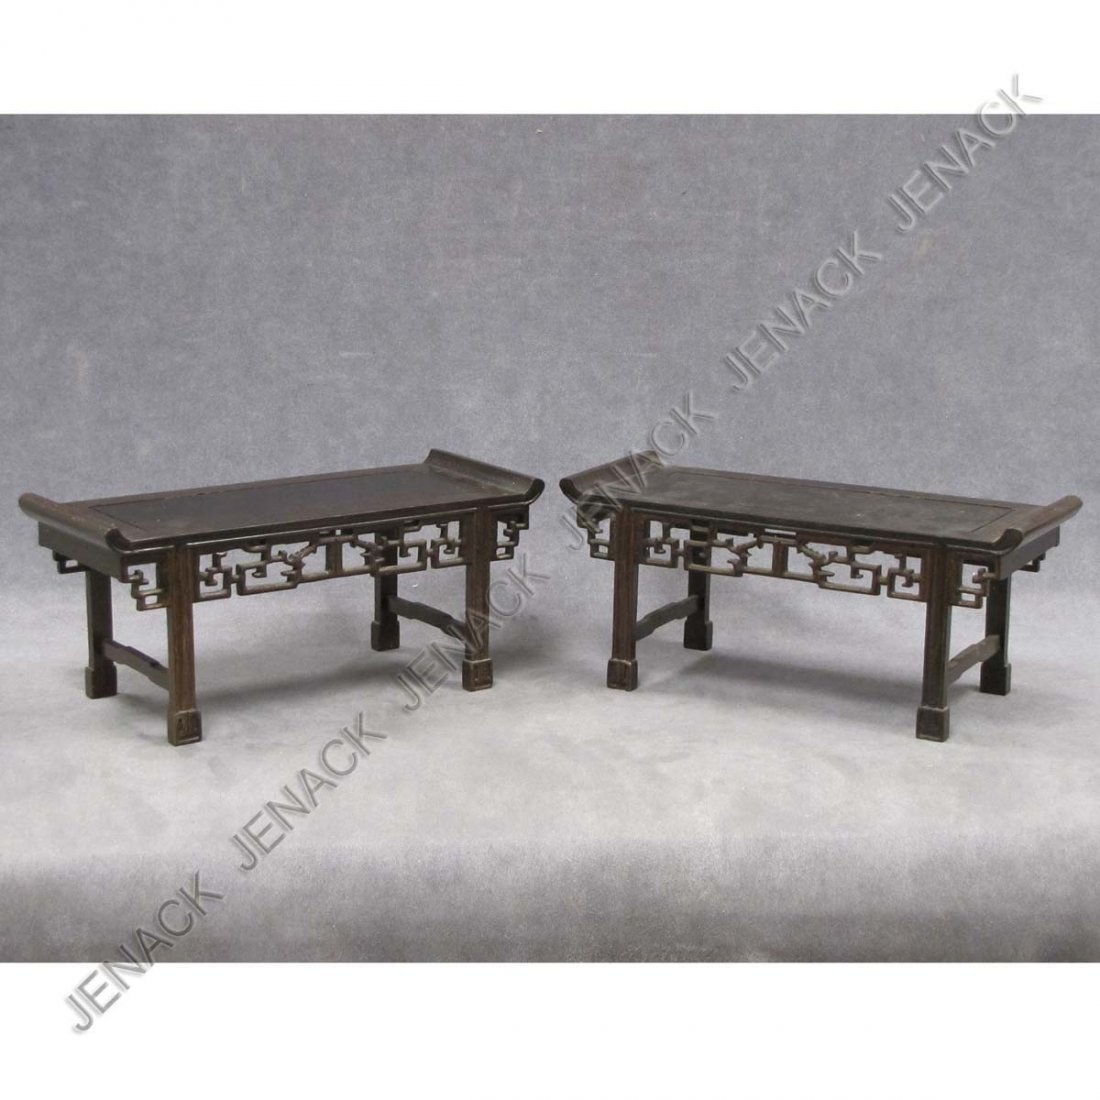 13: PAIR CHINESE CARVED HARDWOOD MINIATURE ALTER TABLE